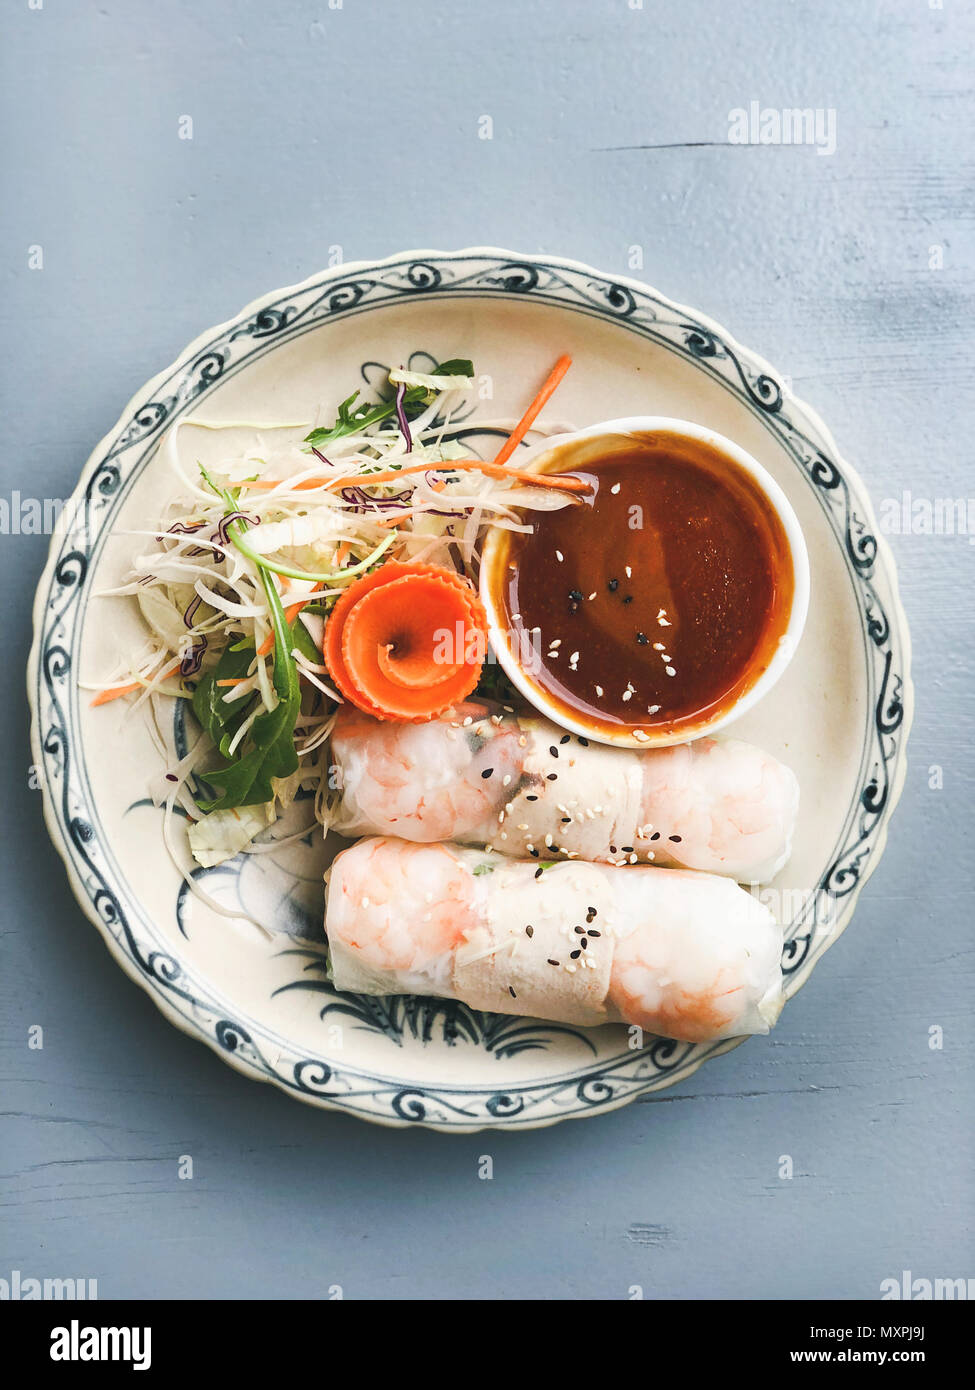 Asian style dinner. Flat-lay of steamed dumplings Dim sum and summer rice paper rolls with shrimp and sauce over blue table, top view, copy space. Chinese cuisine - Stock Image